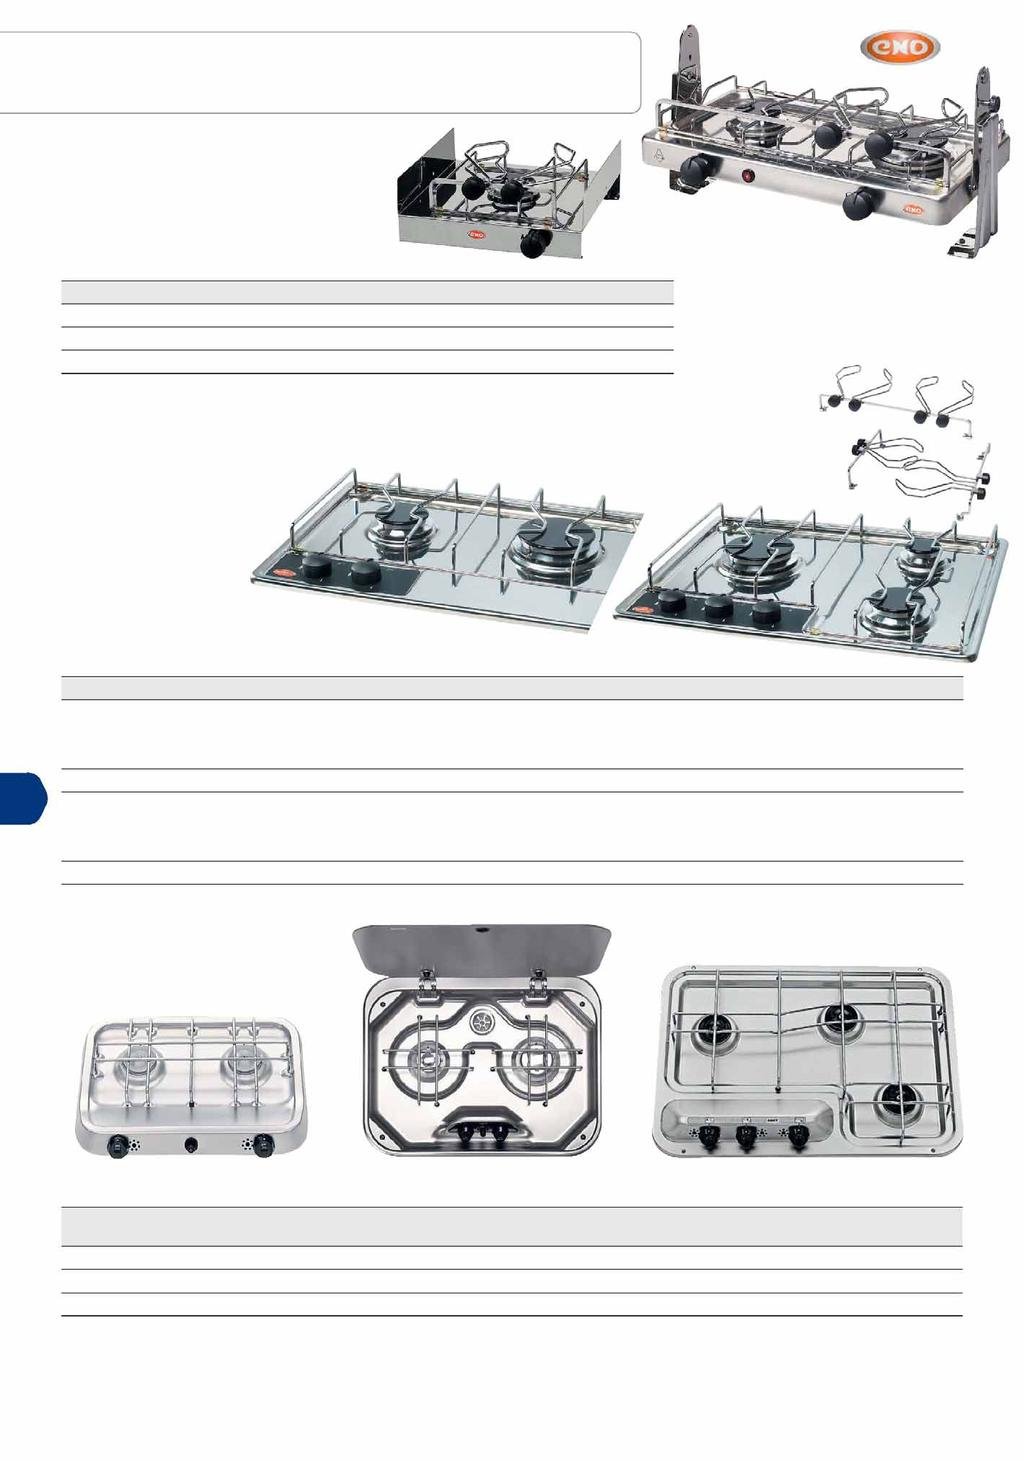 Hob plates Stainless steel cradle hob 1 and 2-burner st. steel hobs with gas safety devices. omply with E standard. utane-propane gas supply. Safety thermocouple.